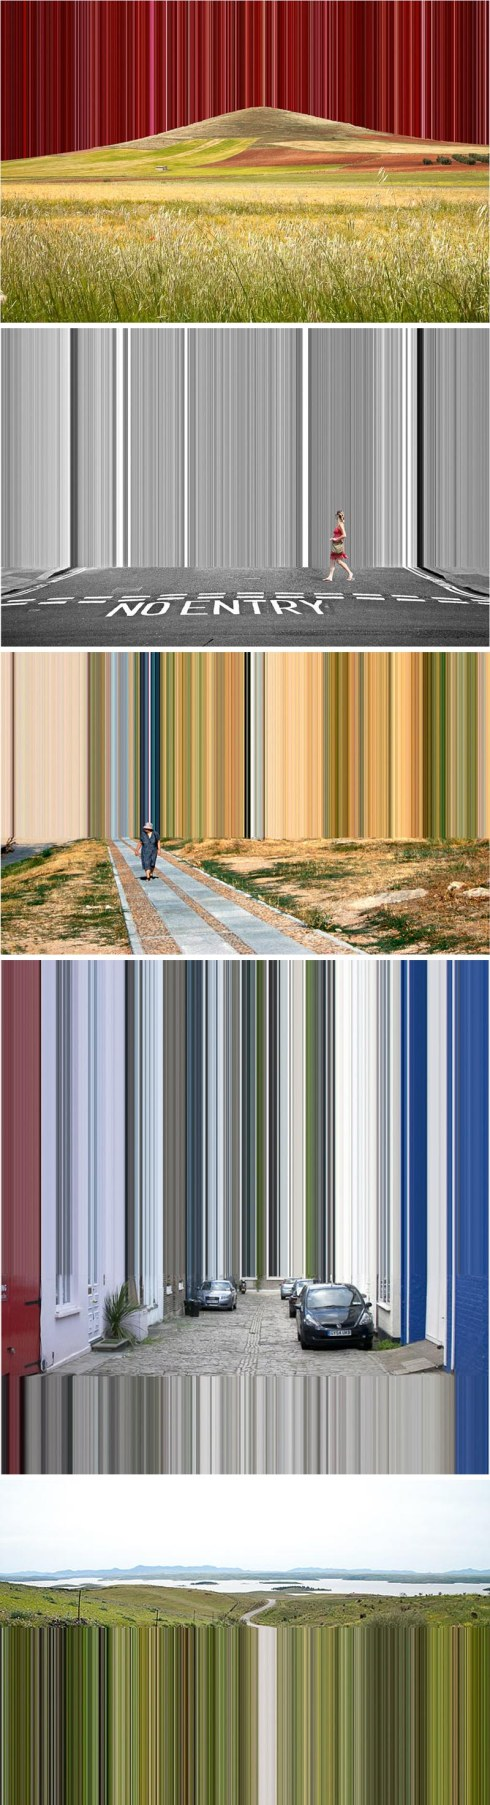 Manipulated photographs by German photographer Robert Schlaug. Beautiful and cool contemporary photography.